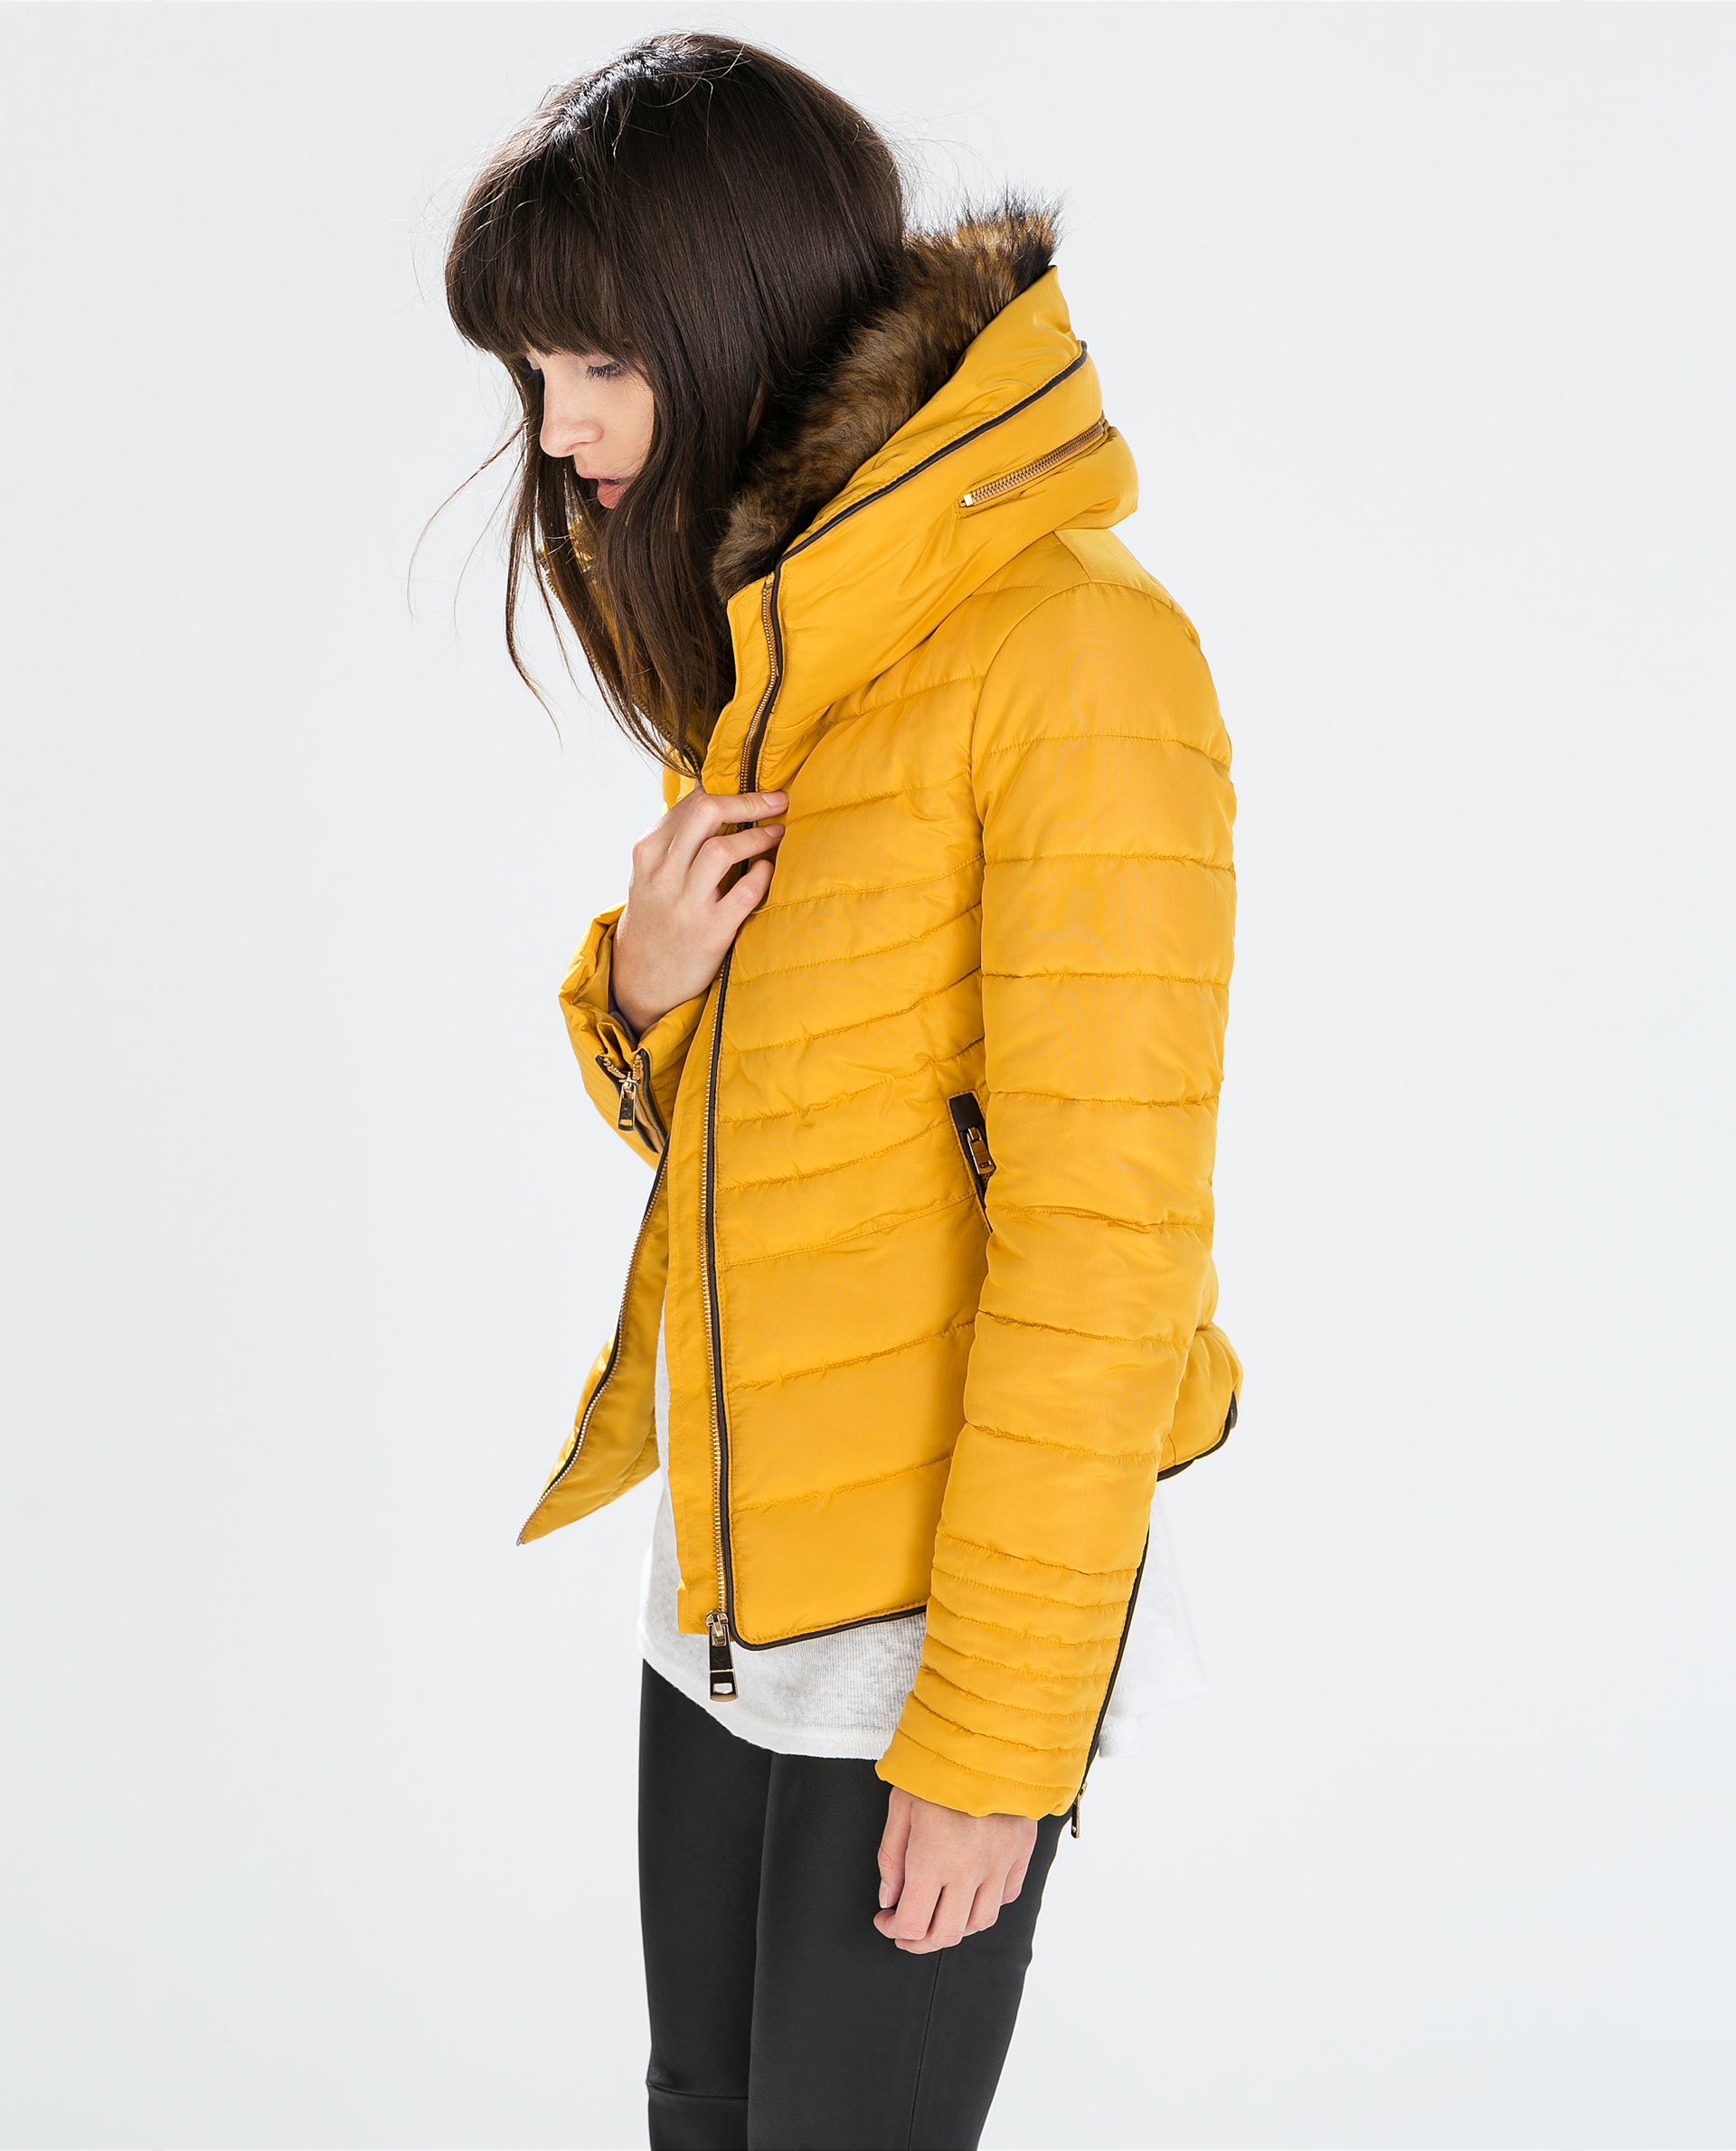 Zara Short Anorak With Fur Collar in Yellow | Lyst